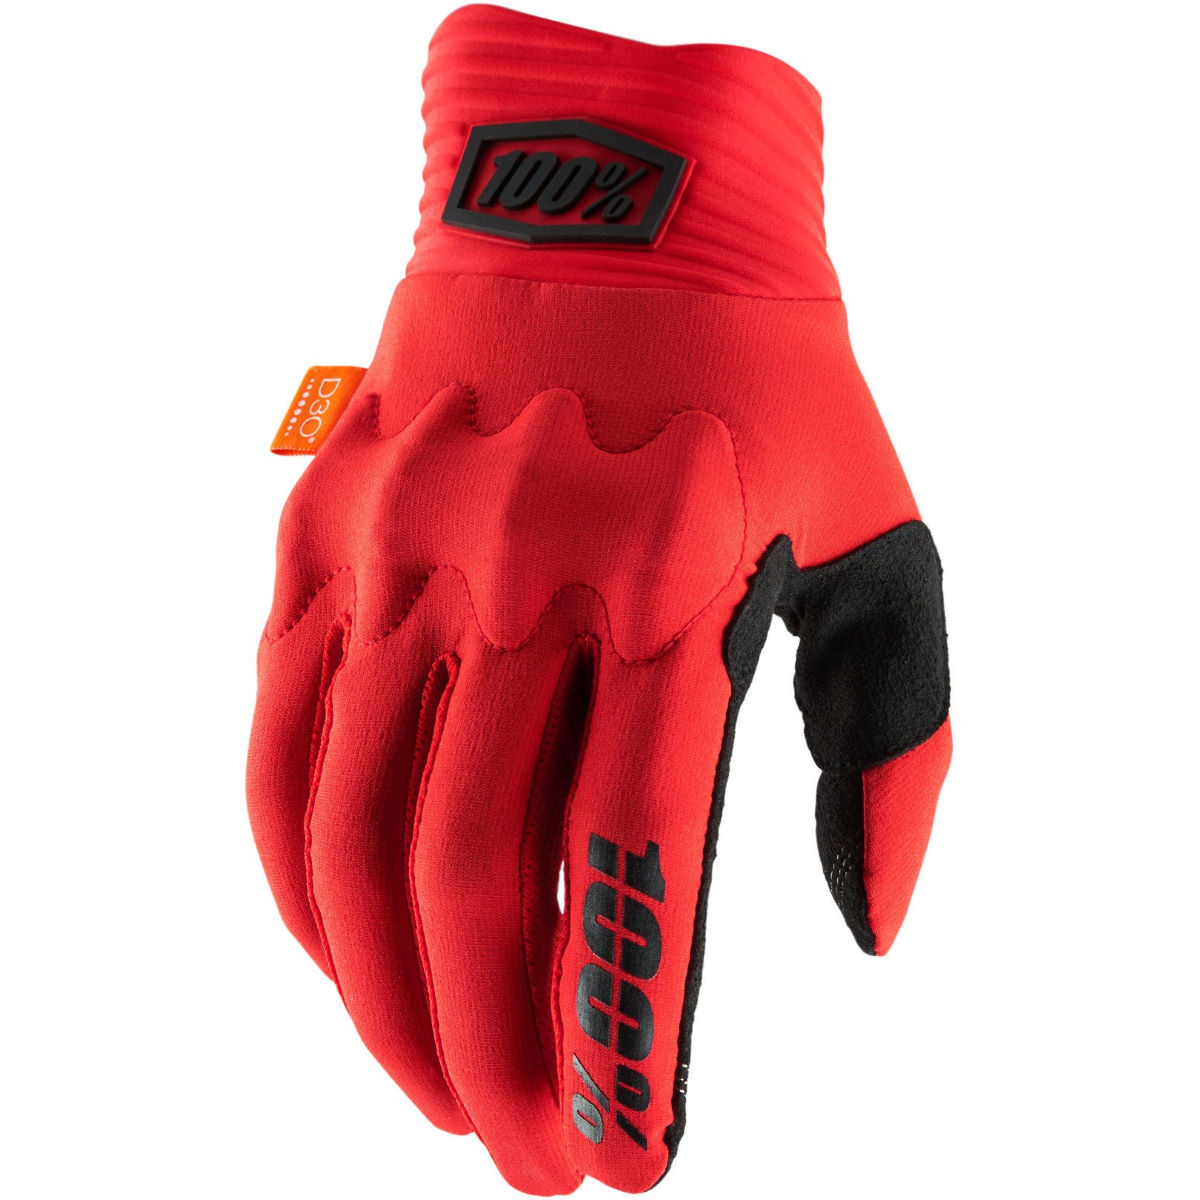 100% Cognito D30 Gloves - Xl Red/black  Gloves